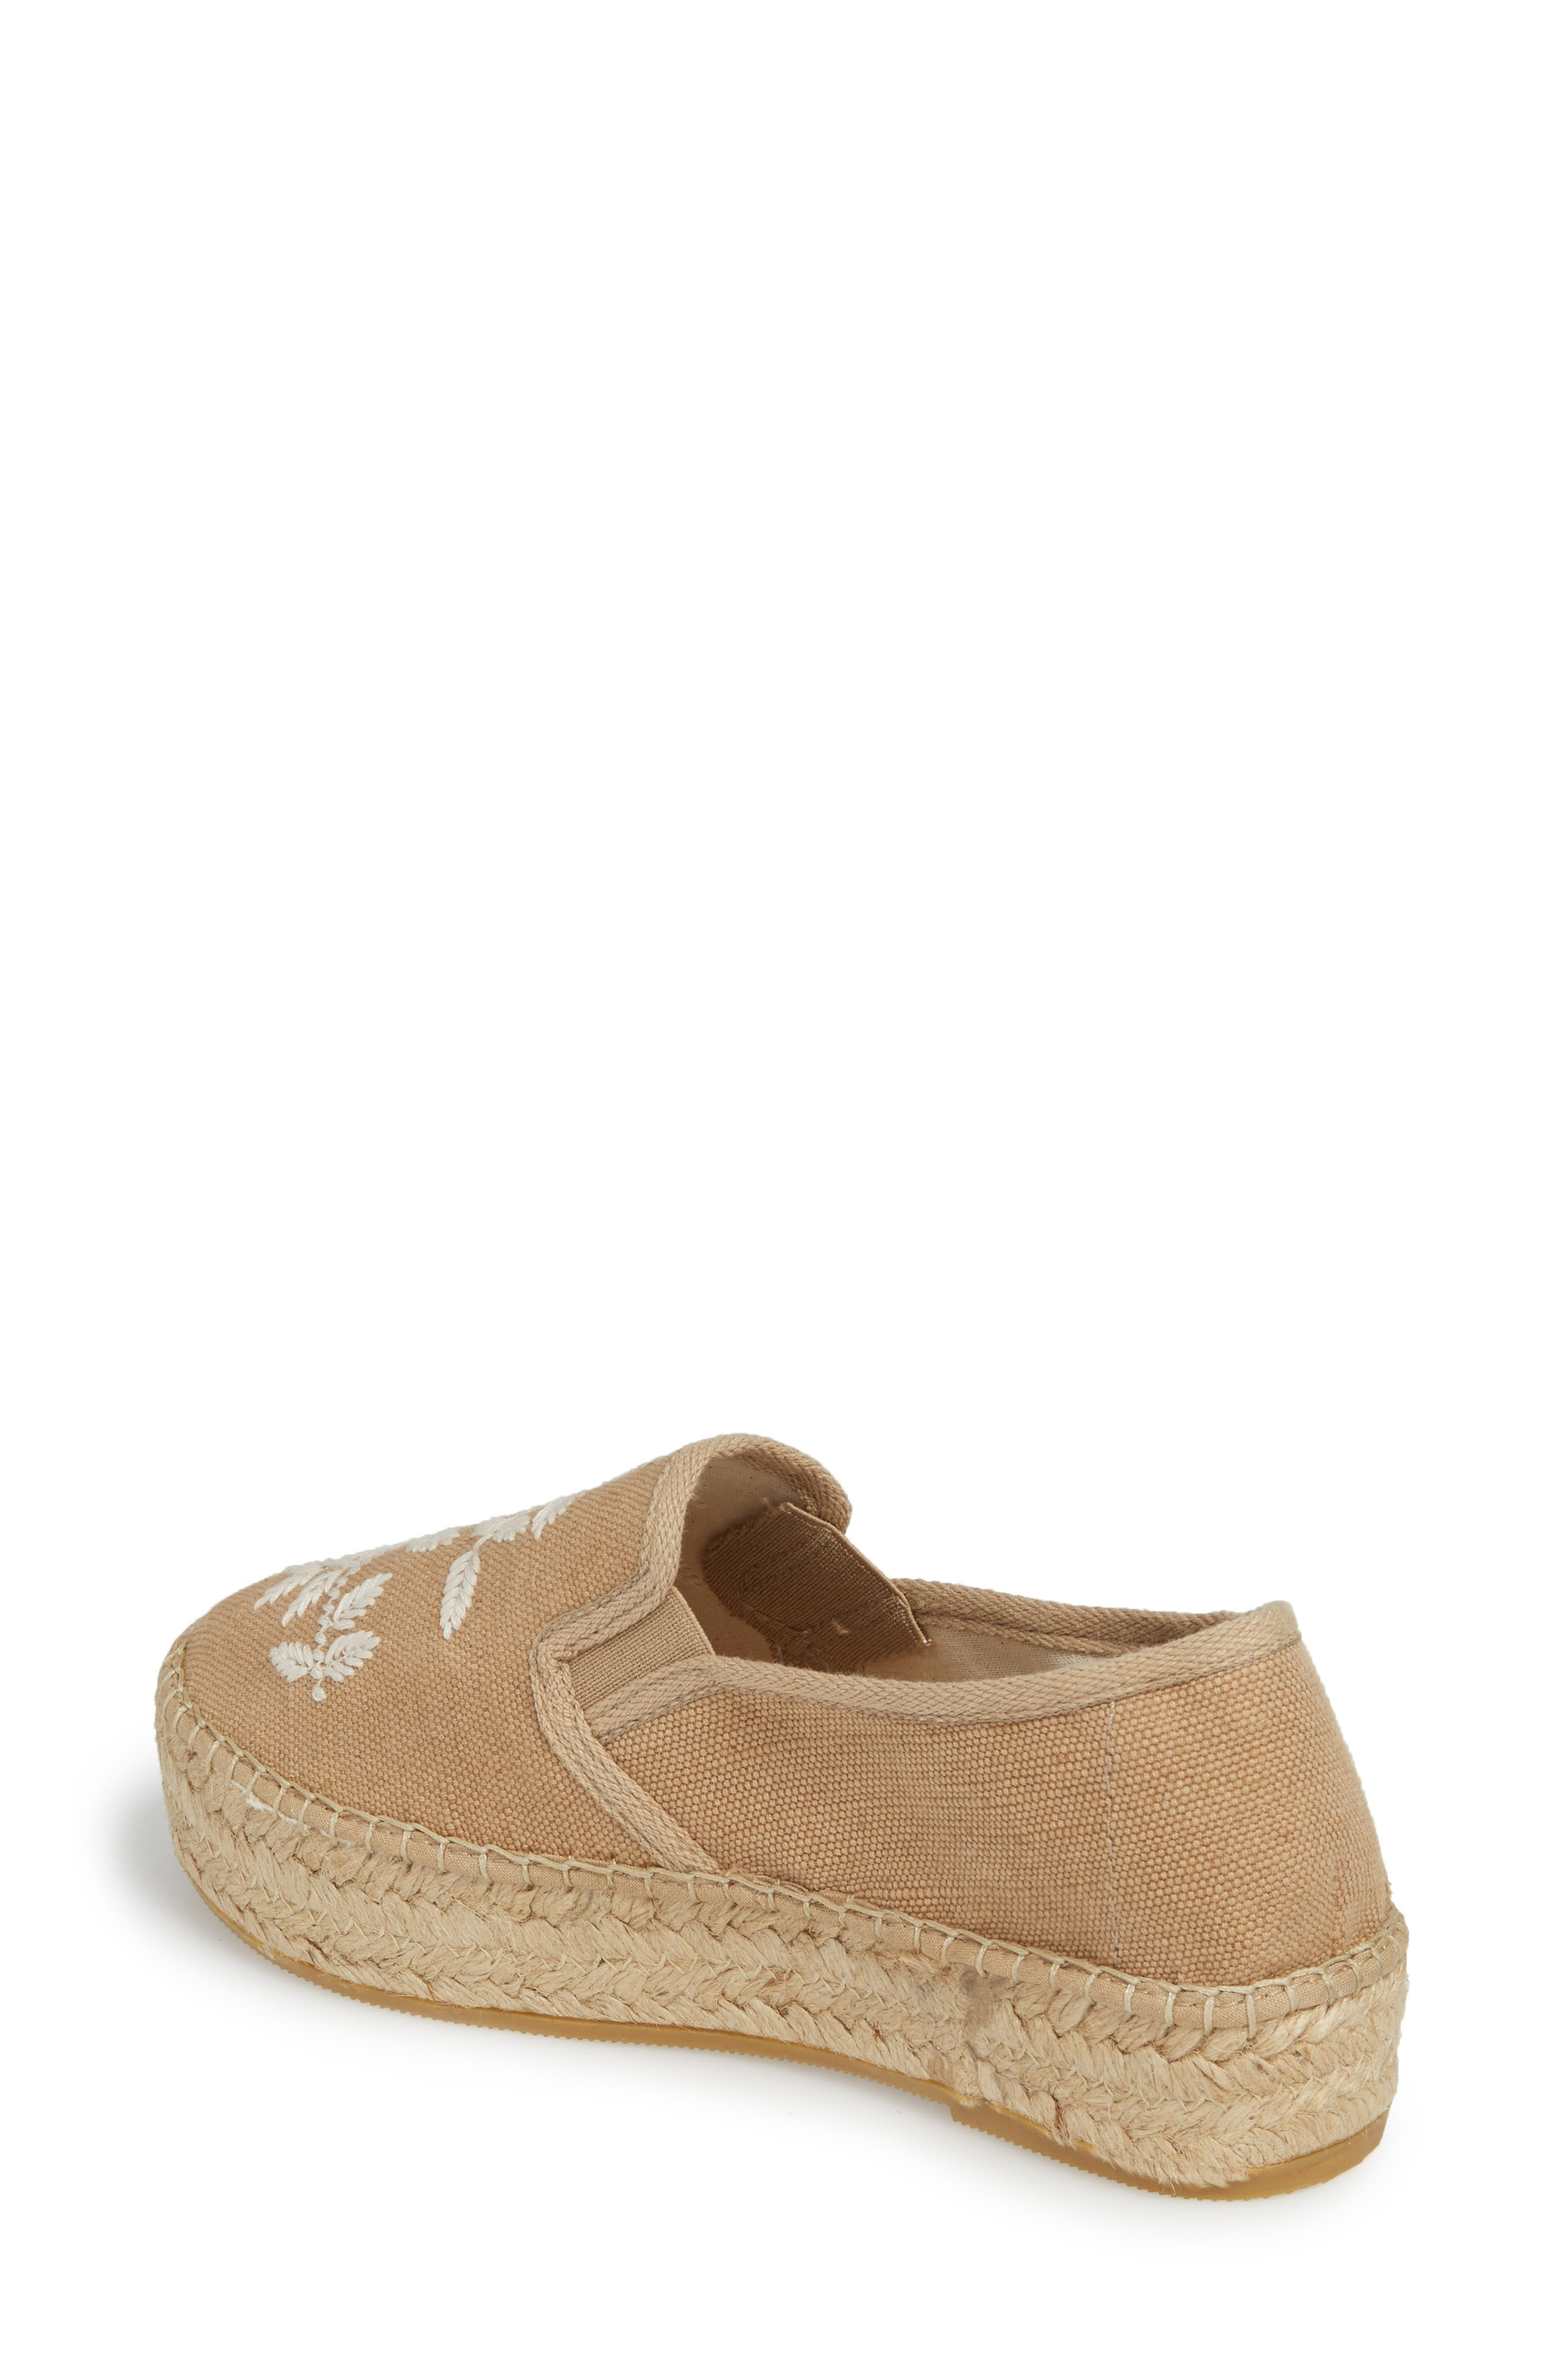 Florence Embroidered Platform Espadrille Sneaker,                             Alternate thumbnail 2, color,                             Tobacco Fabric